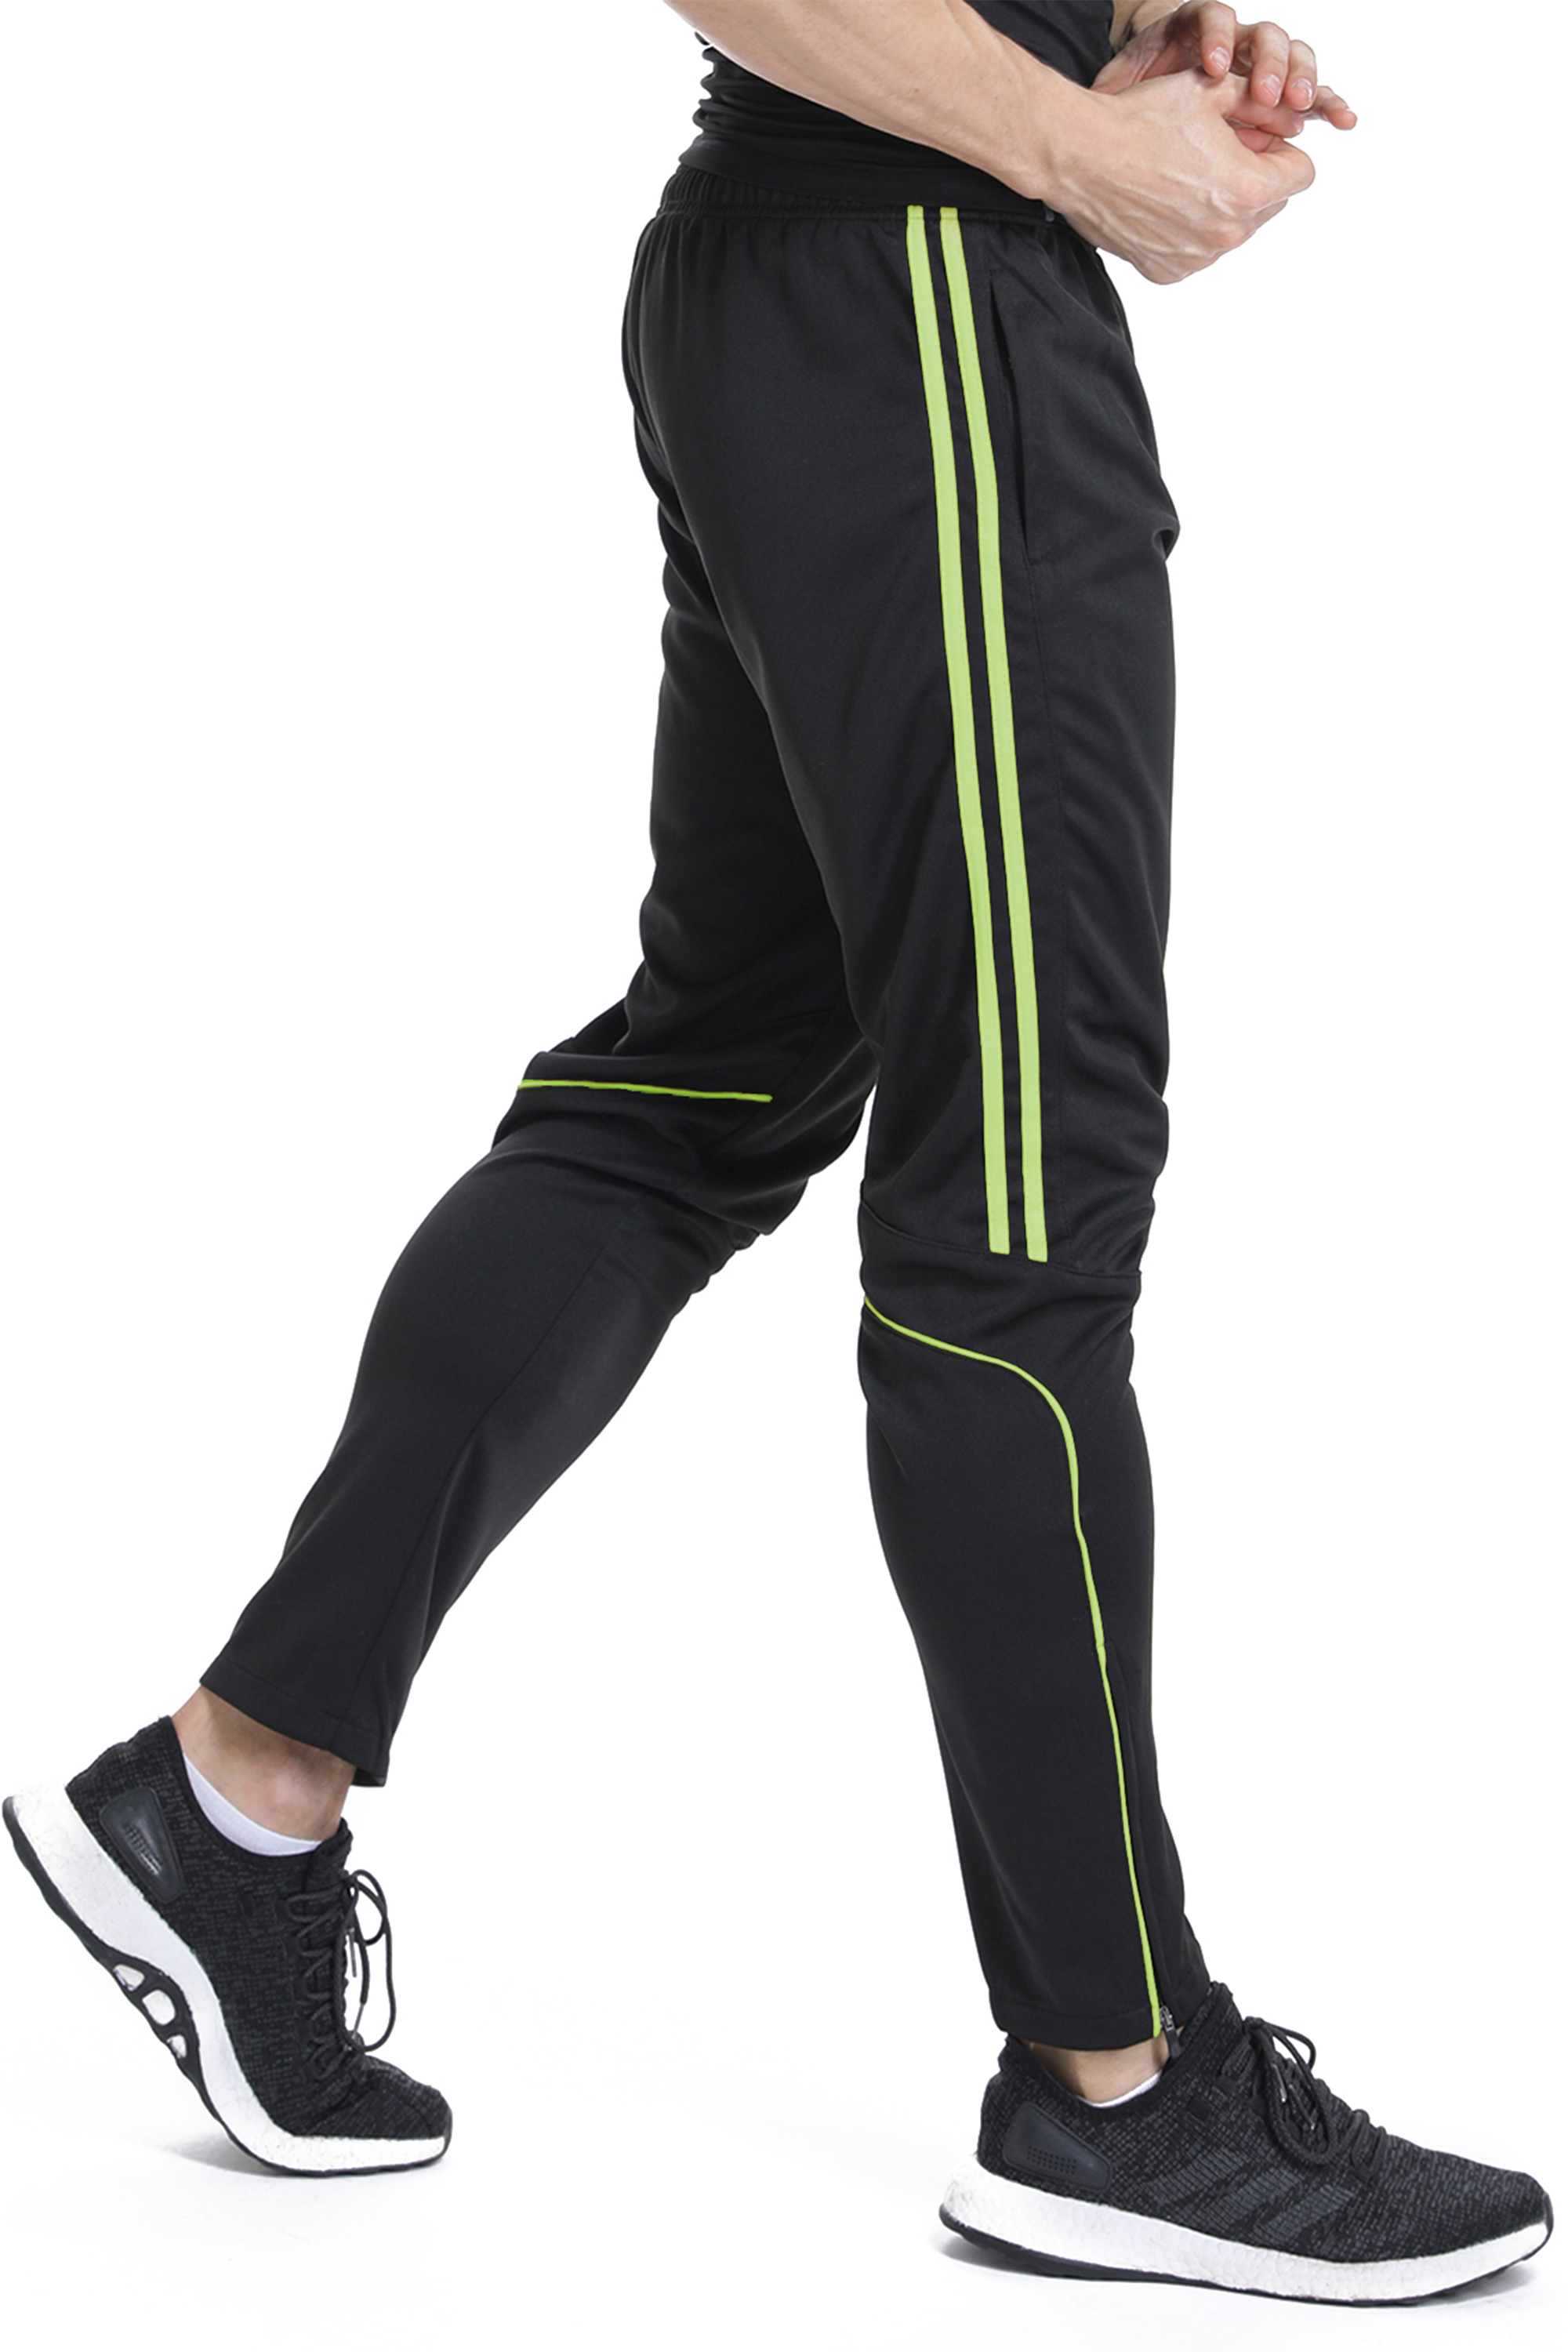 FITTOO Mens Running Training Pants Pockets Run Joggers Sports Workout Trousers